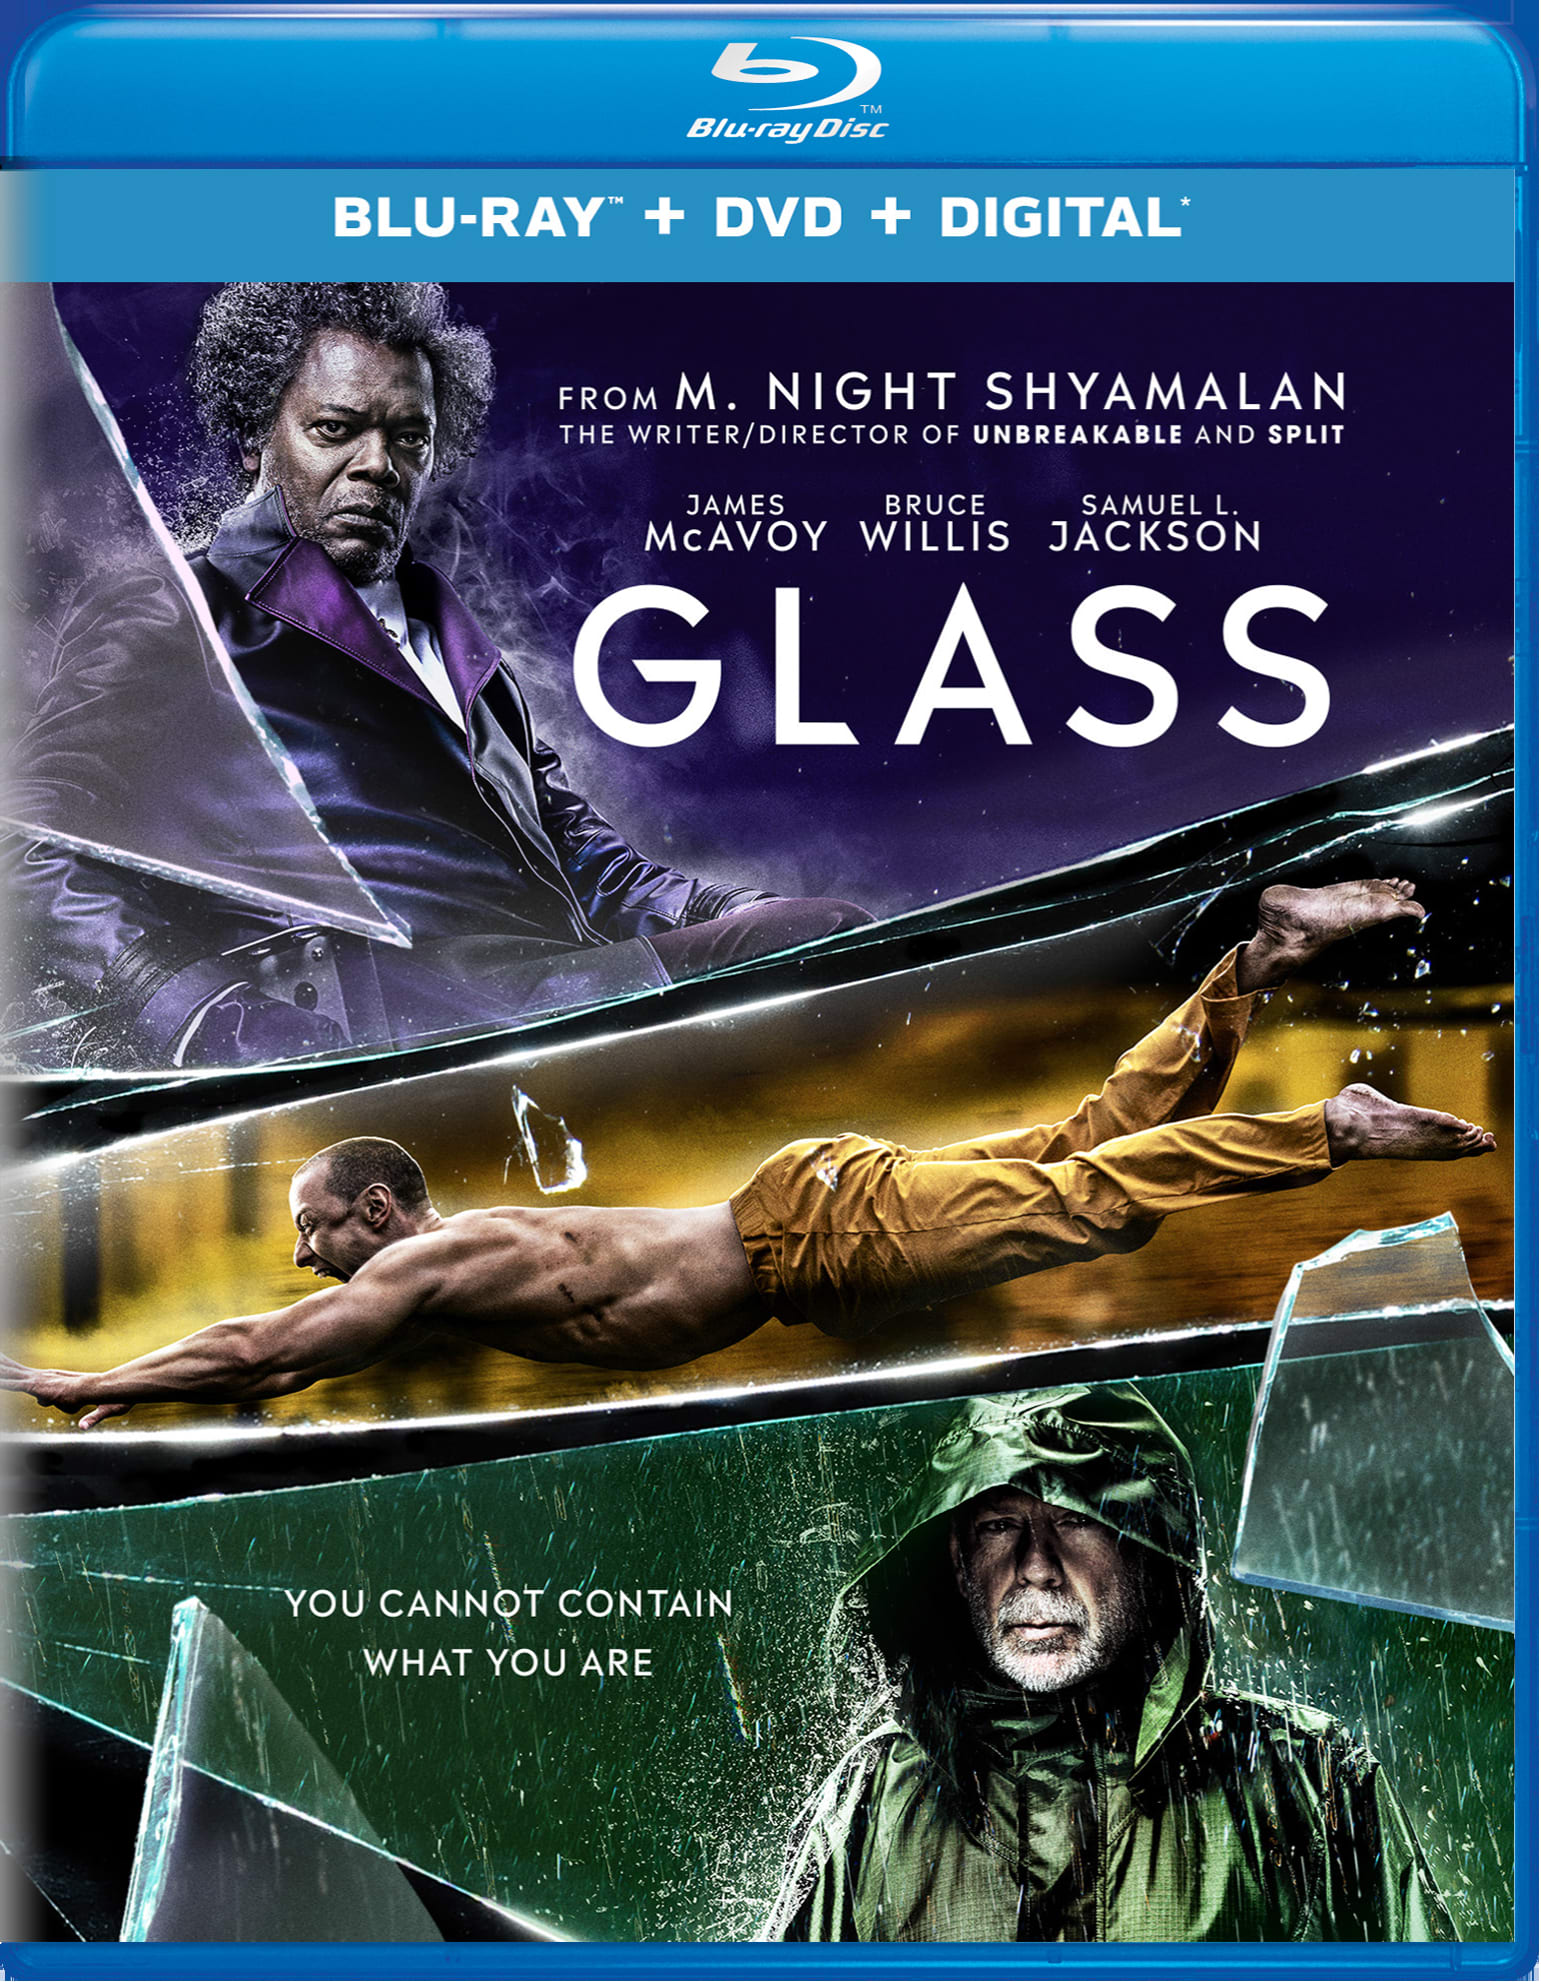 Glass (DVD + Digital) [Blu-ray]